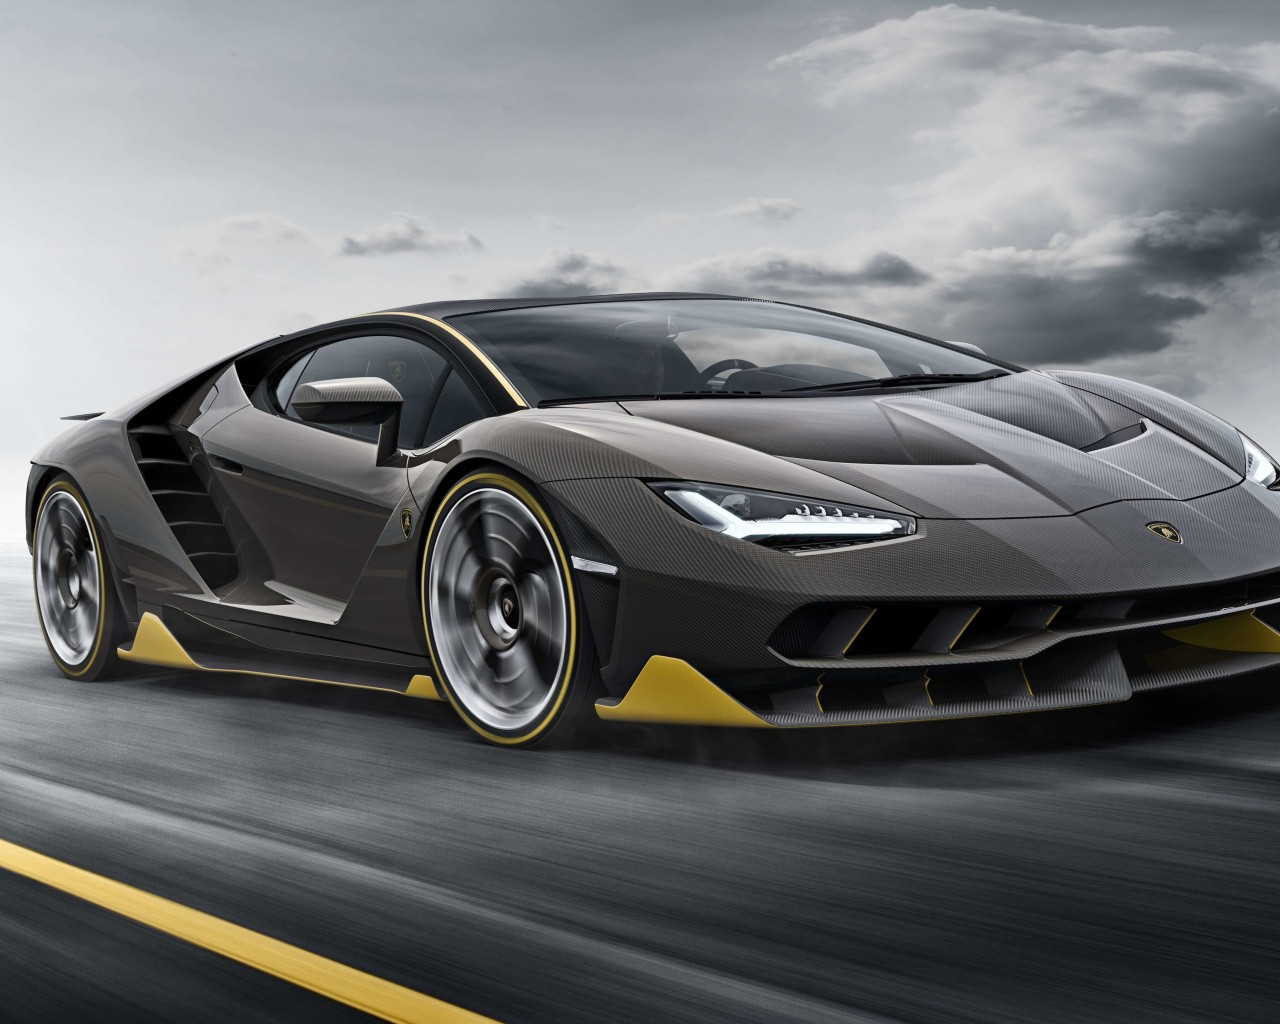 Lamborghini Centenario LP770-4 Wallpaper for Desktop 1280x1024